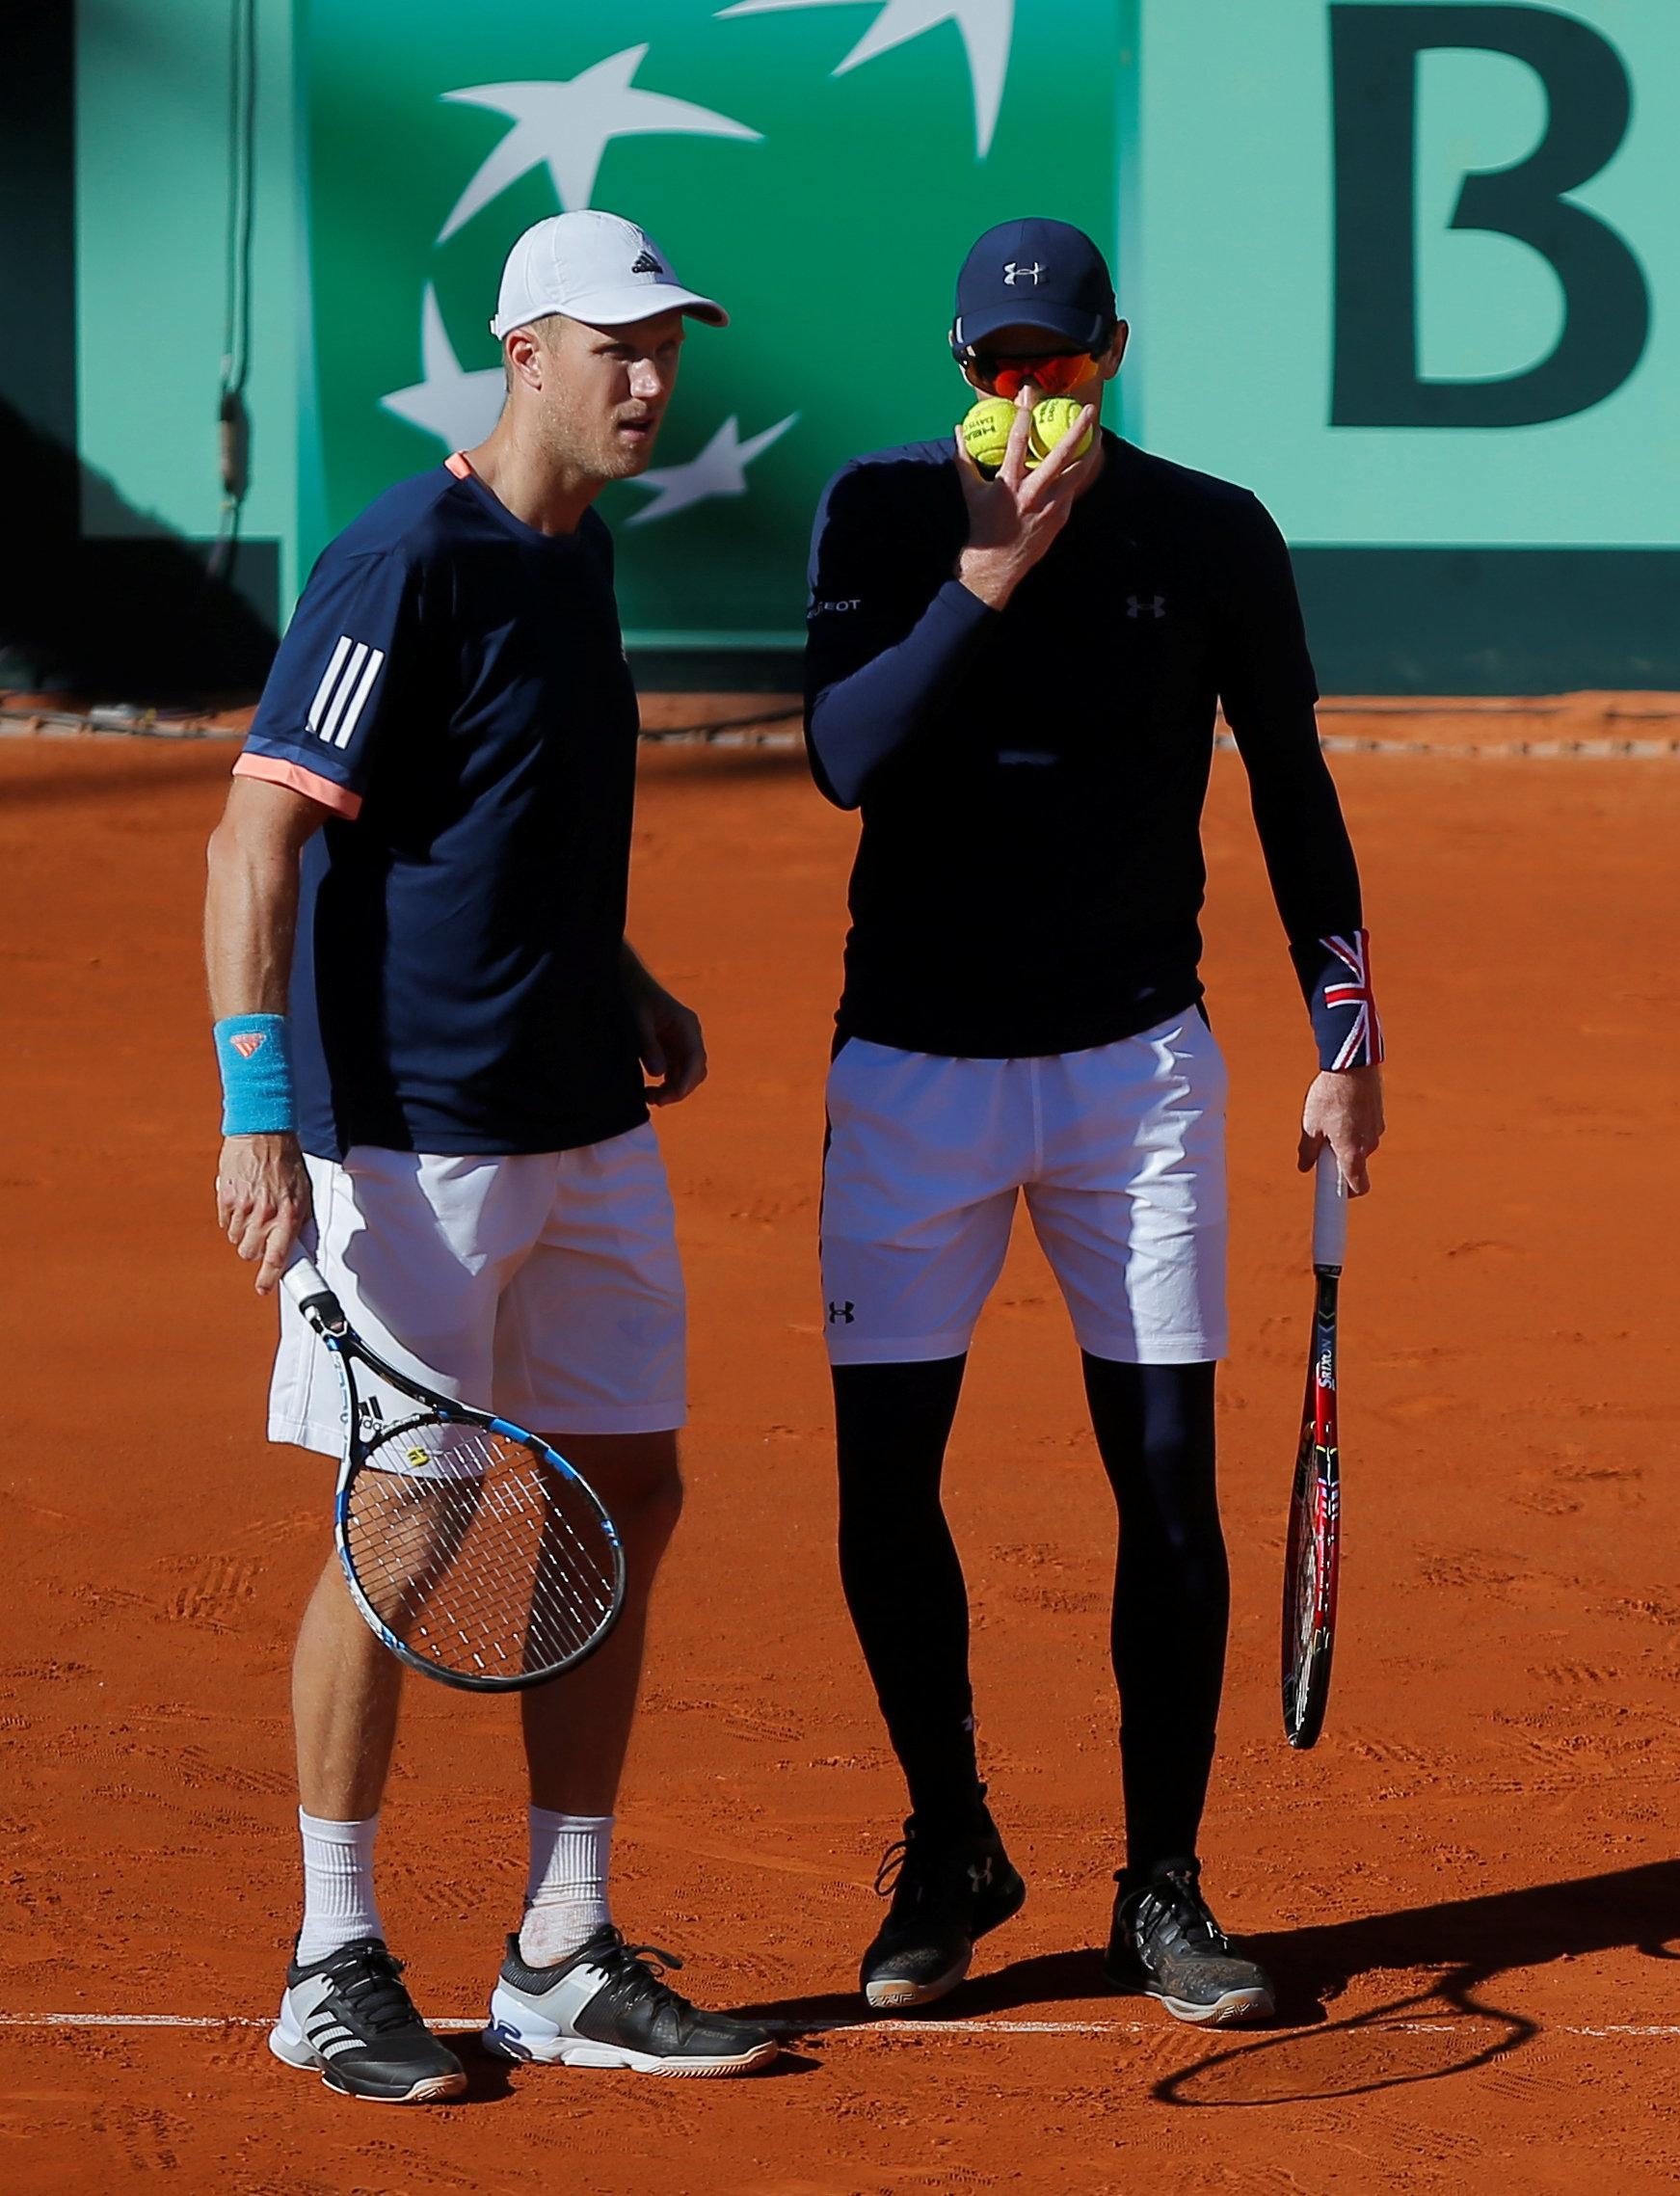 Jamie Murray and Dominic Inglot lost in straight sets.